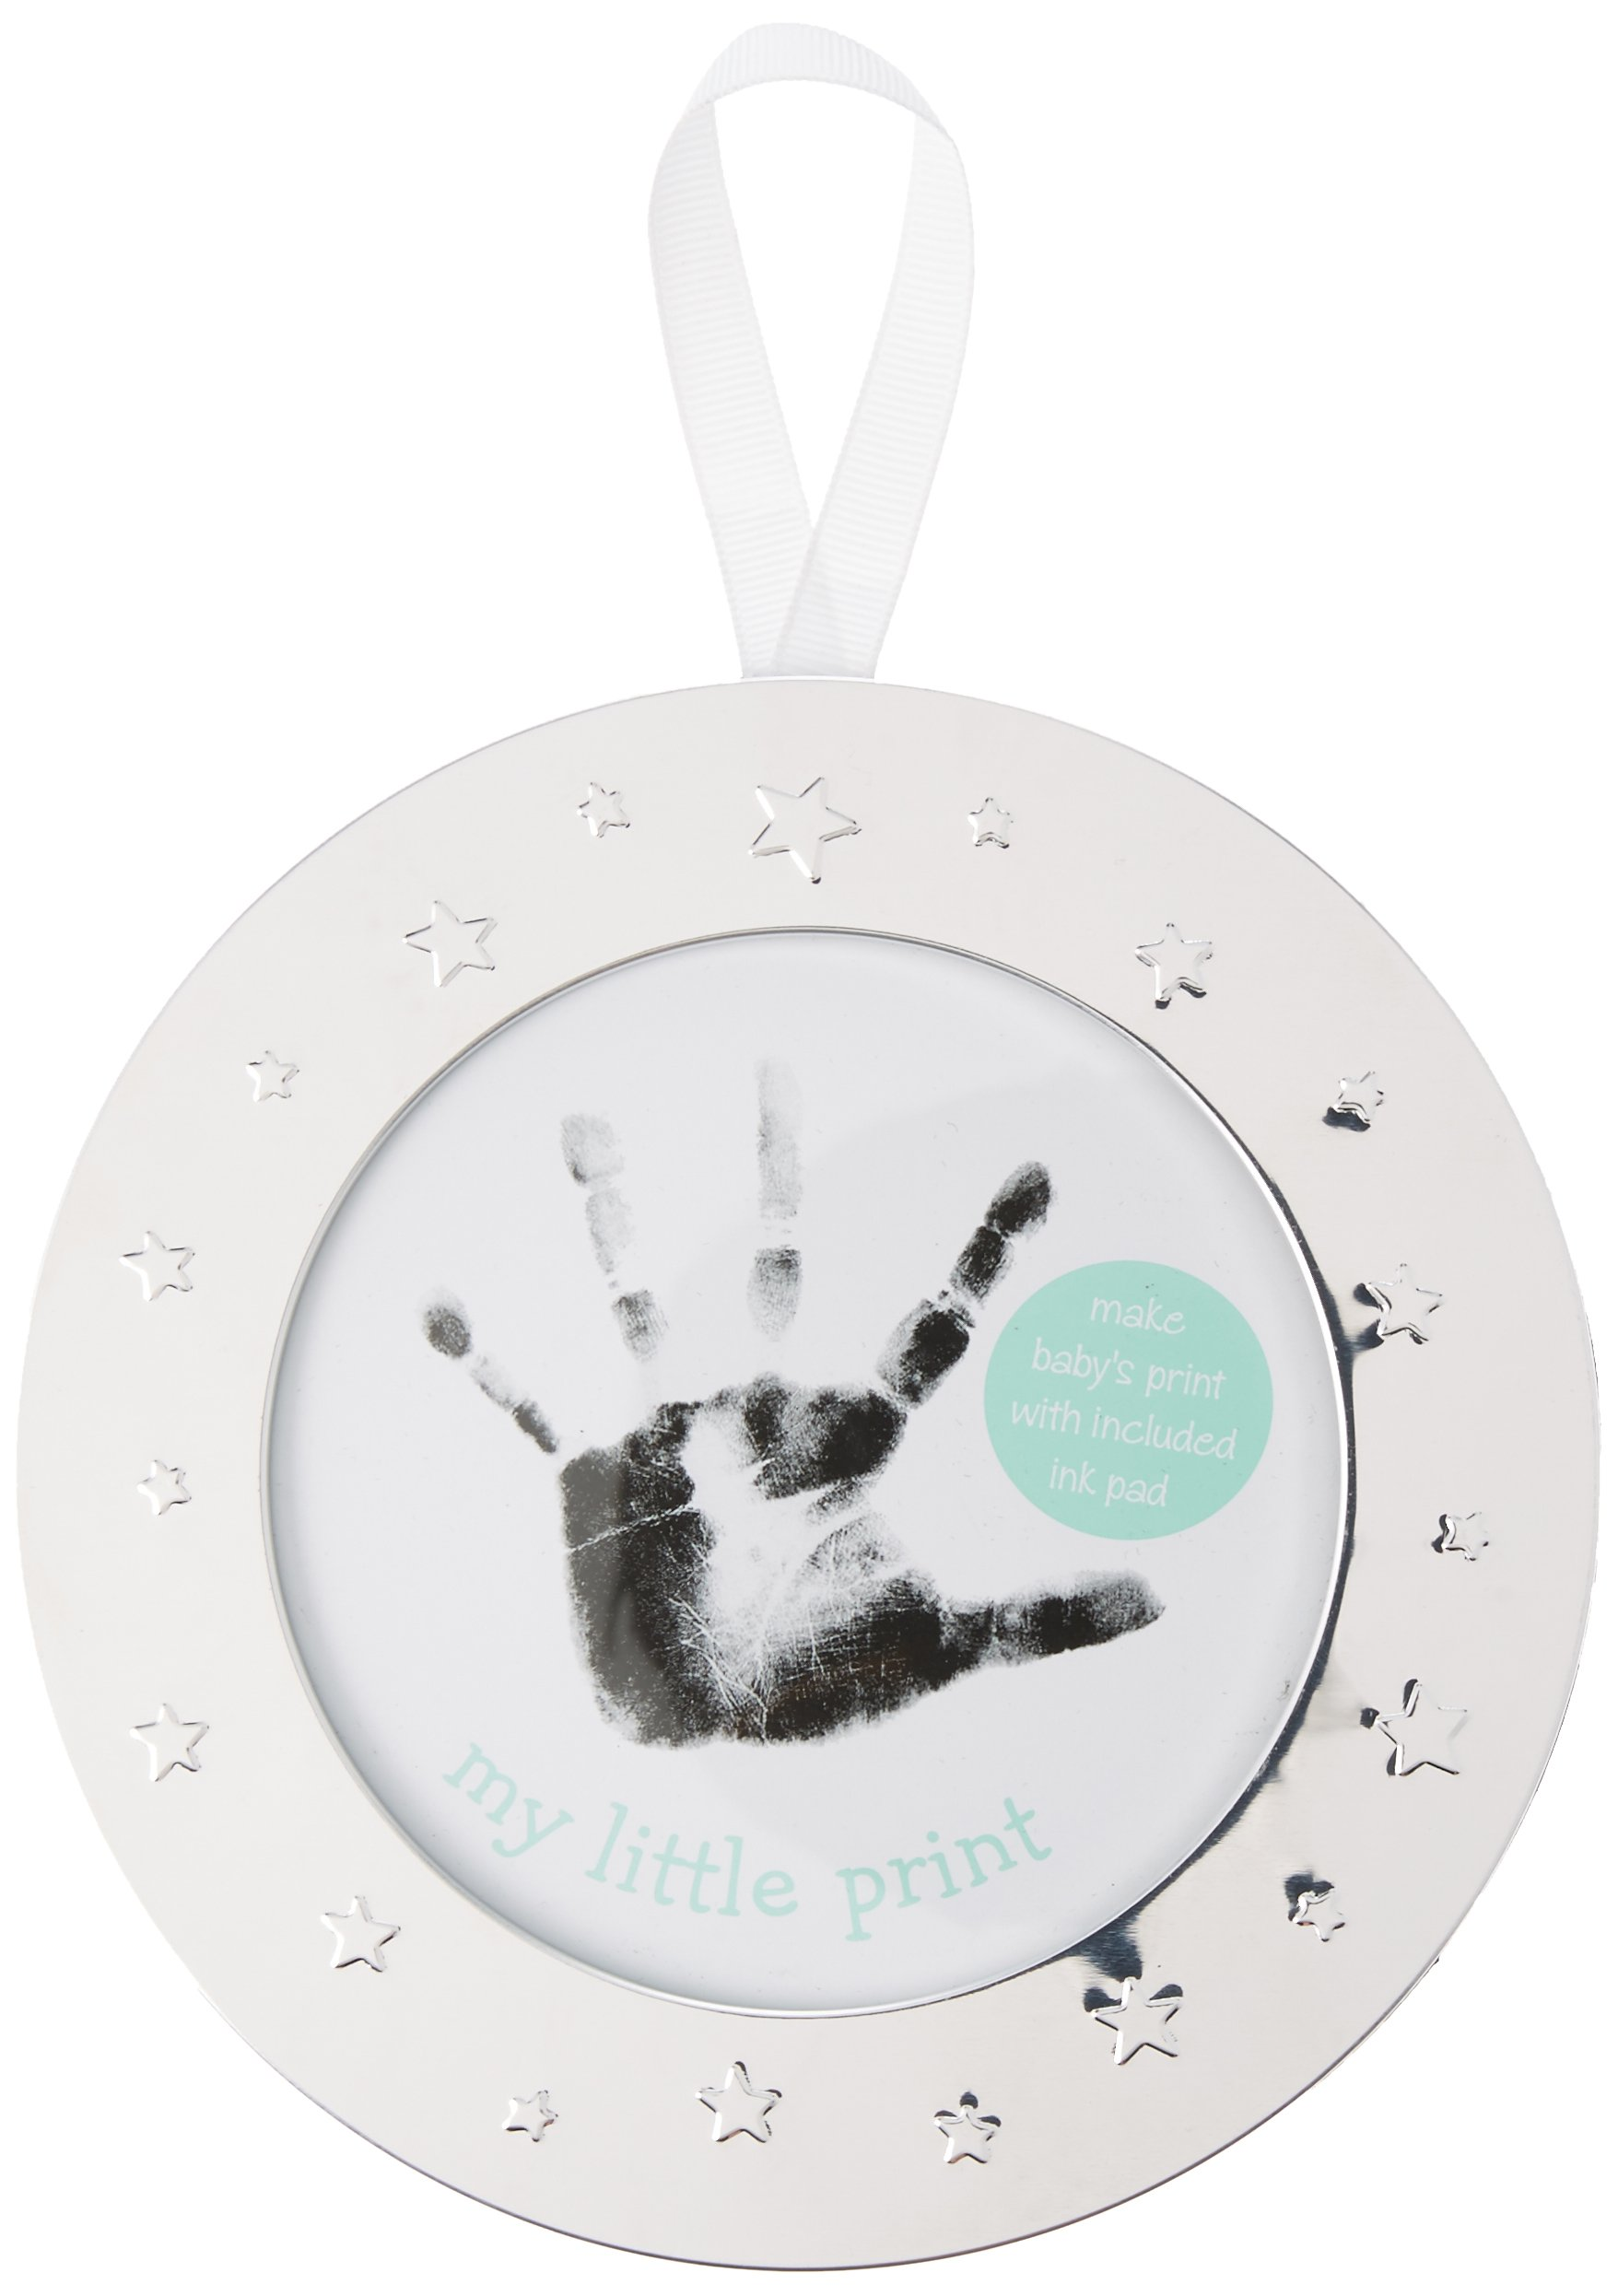 Lil Peach Babyprints Handprint or Footprint Keepsake Ornament Kit With Included Ink Pad and Ivory Ribbon, Round, Silver